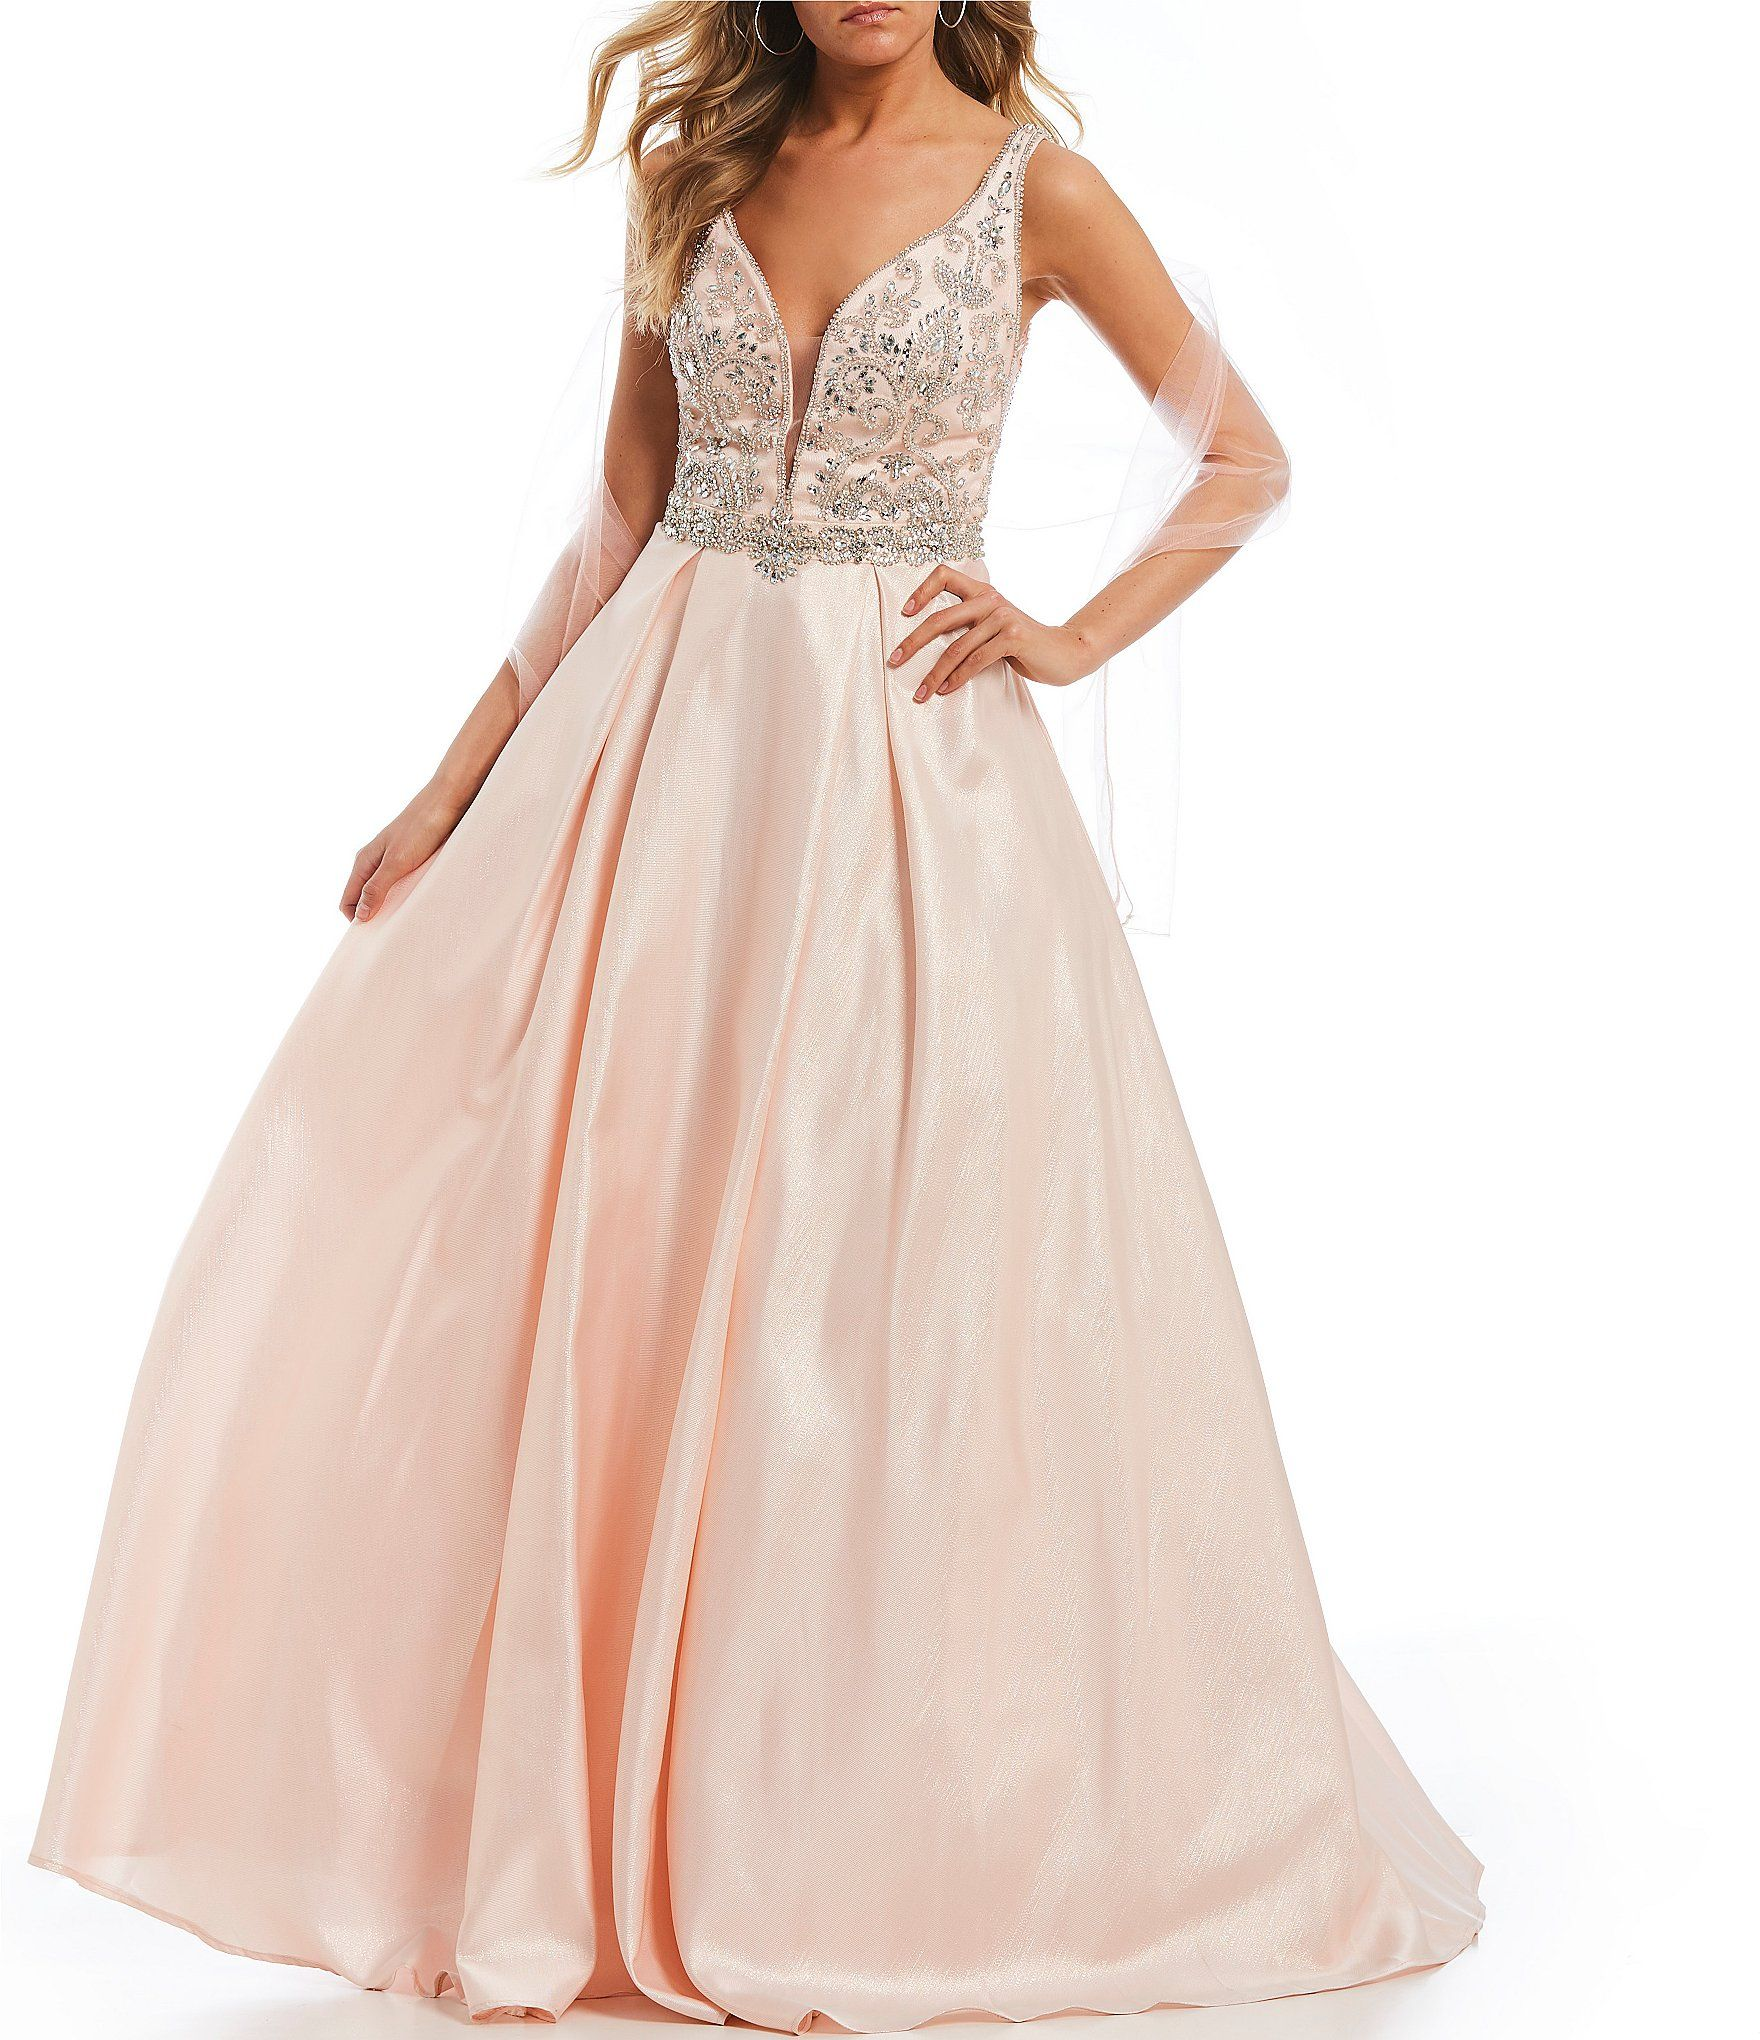 2fc35f7bc31 Shop for Coya Collection Deep-V Beaded Bodice Satin Ballgown at Dillards.com.  Visit Dillards.com to find clothing